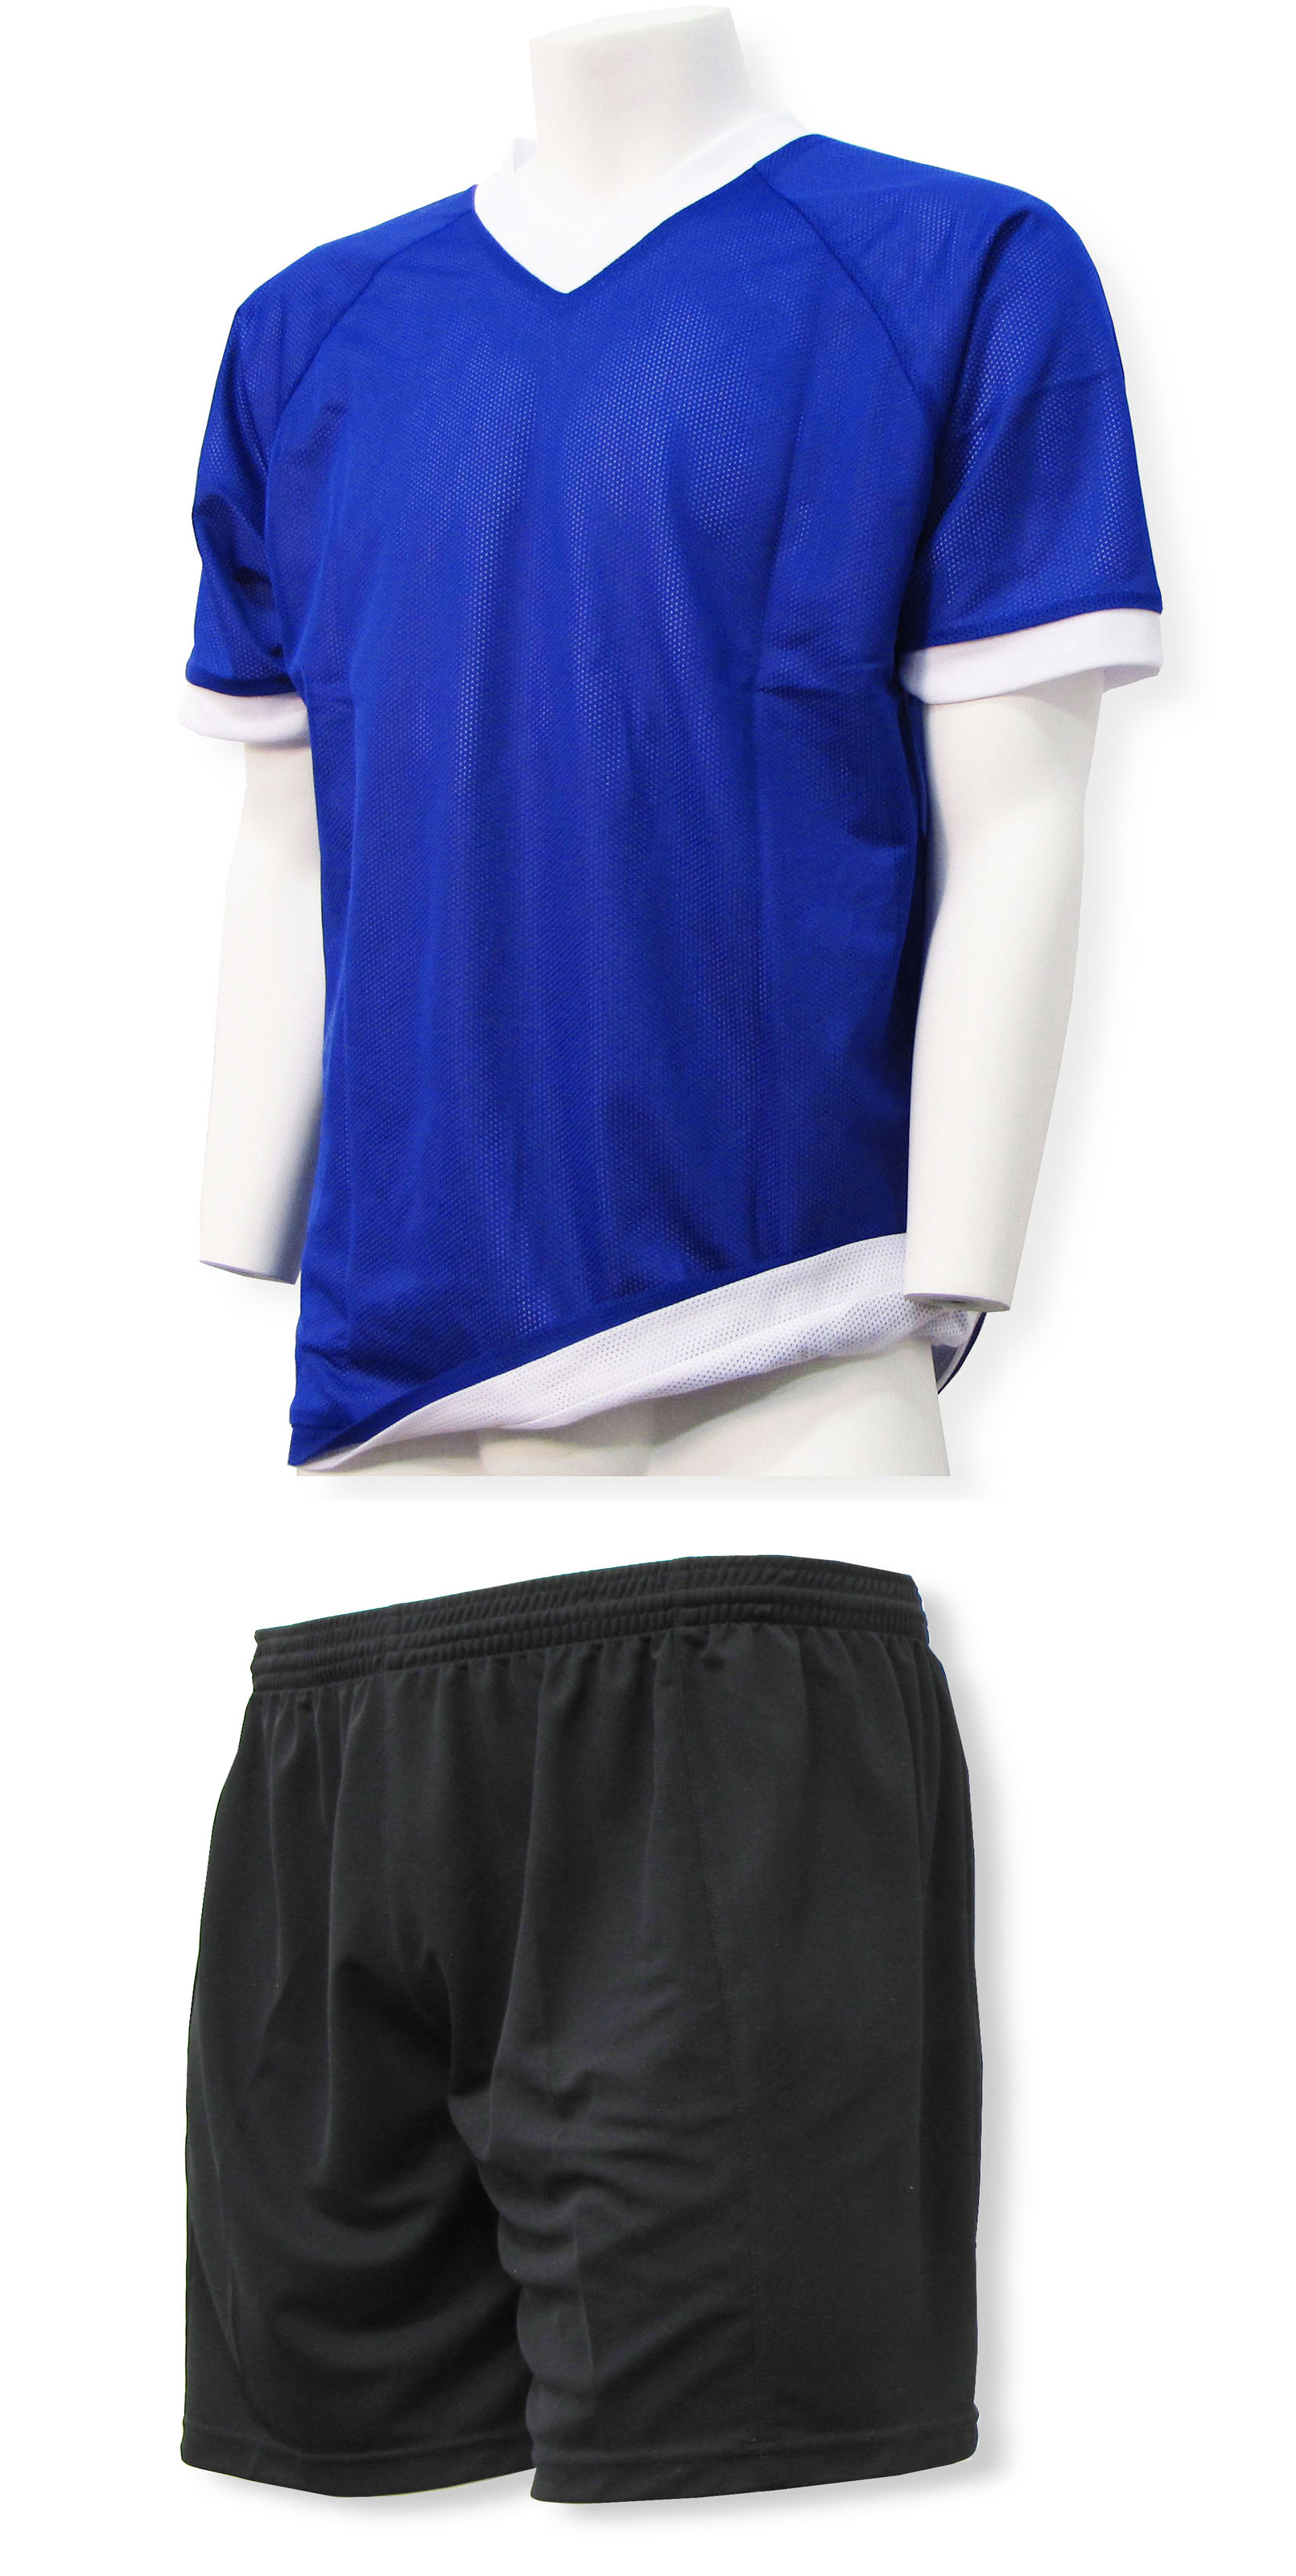 Reversible sports uniform jersey in royal/white with black shorts by Code Four Athletics